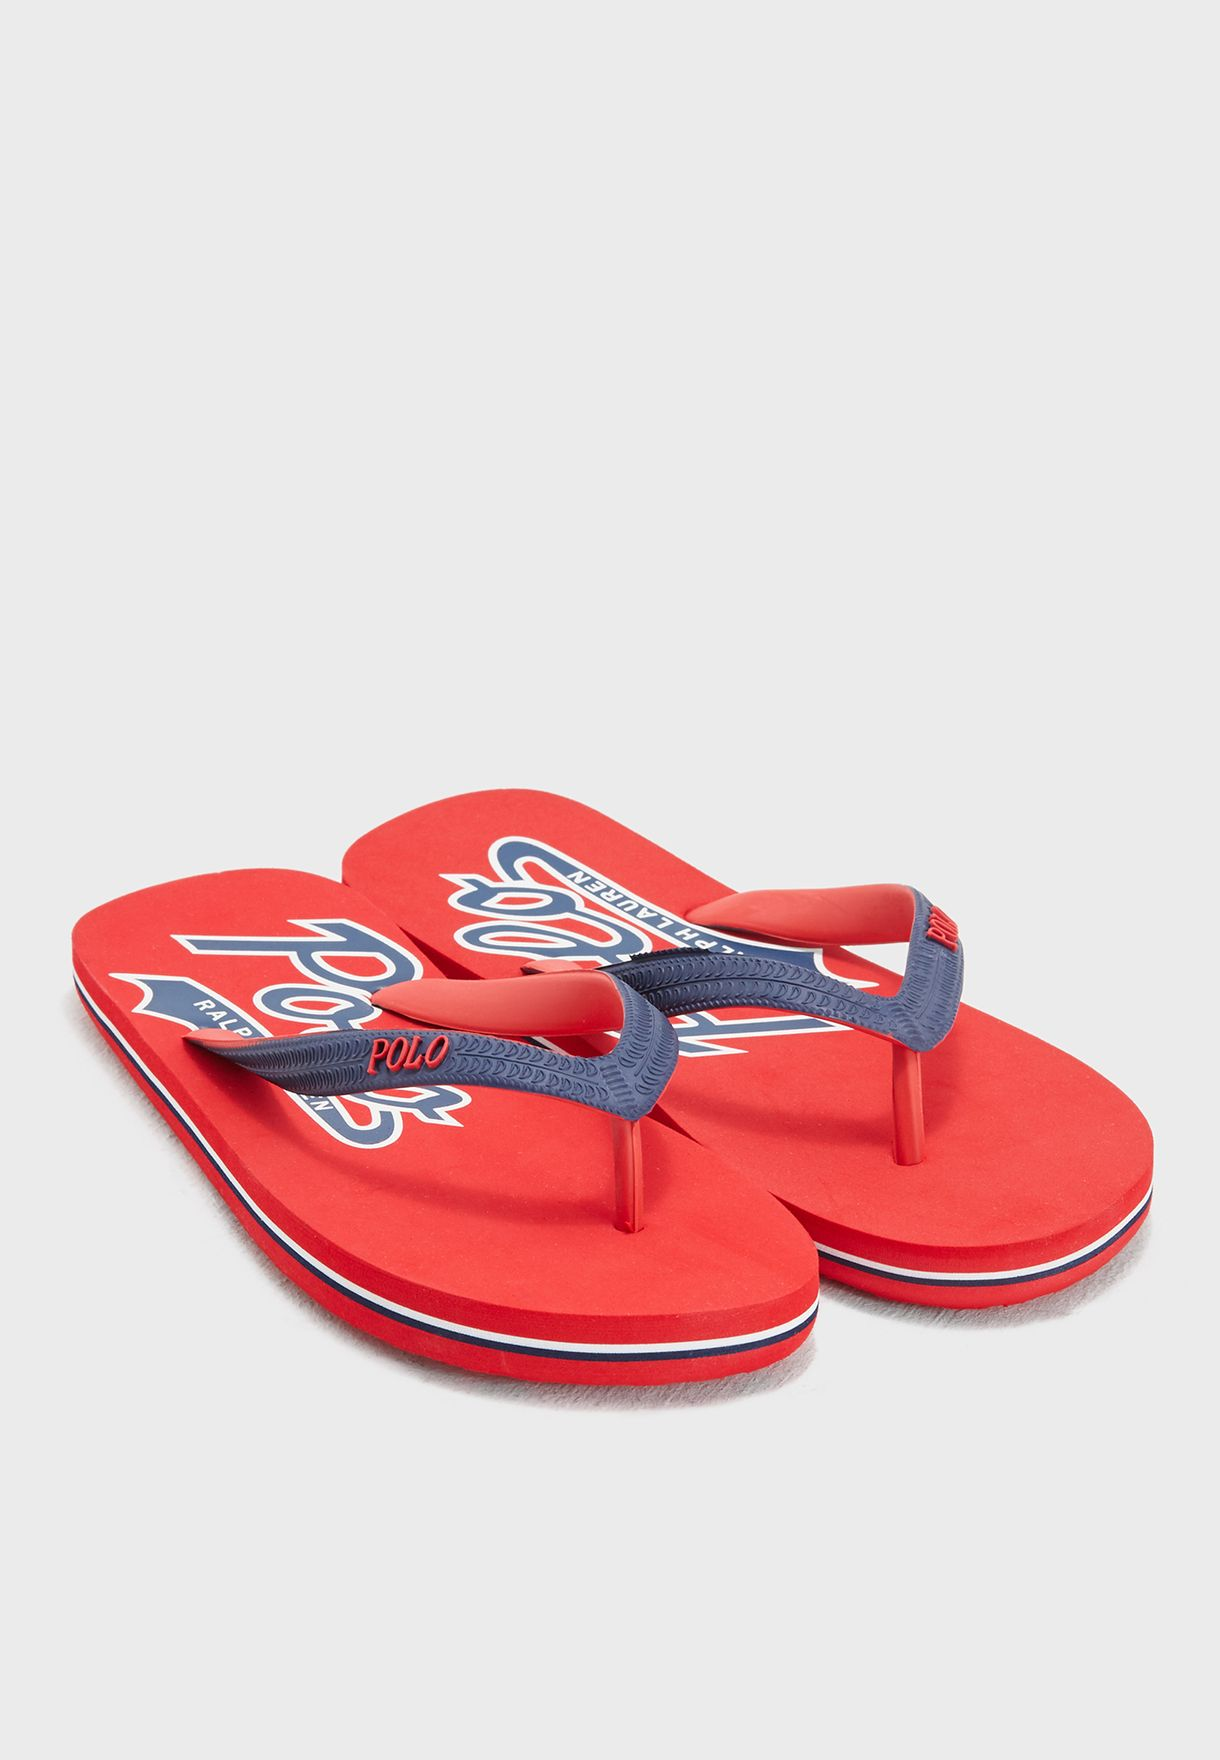 83dd3f167881 Shop Polo Ralph Lauren red Whitlebury II Casual Flip Flops ...